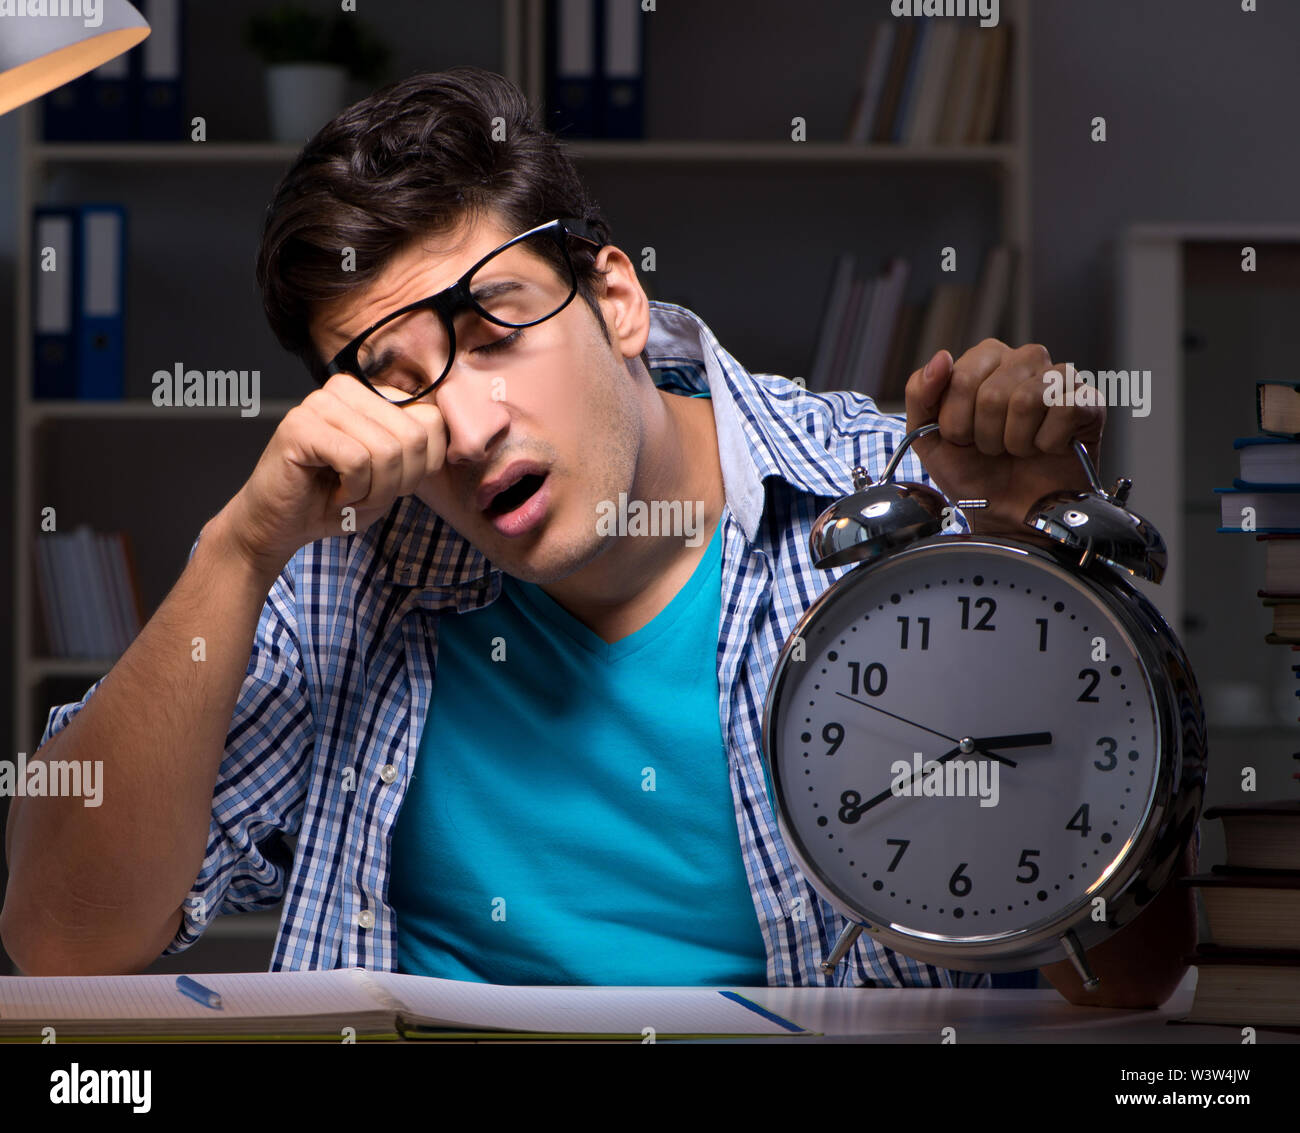 The student preparing for exams late night at home - Stock Image